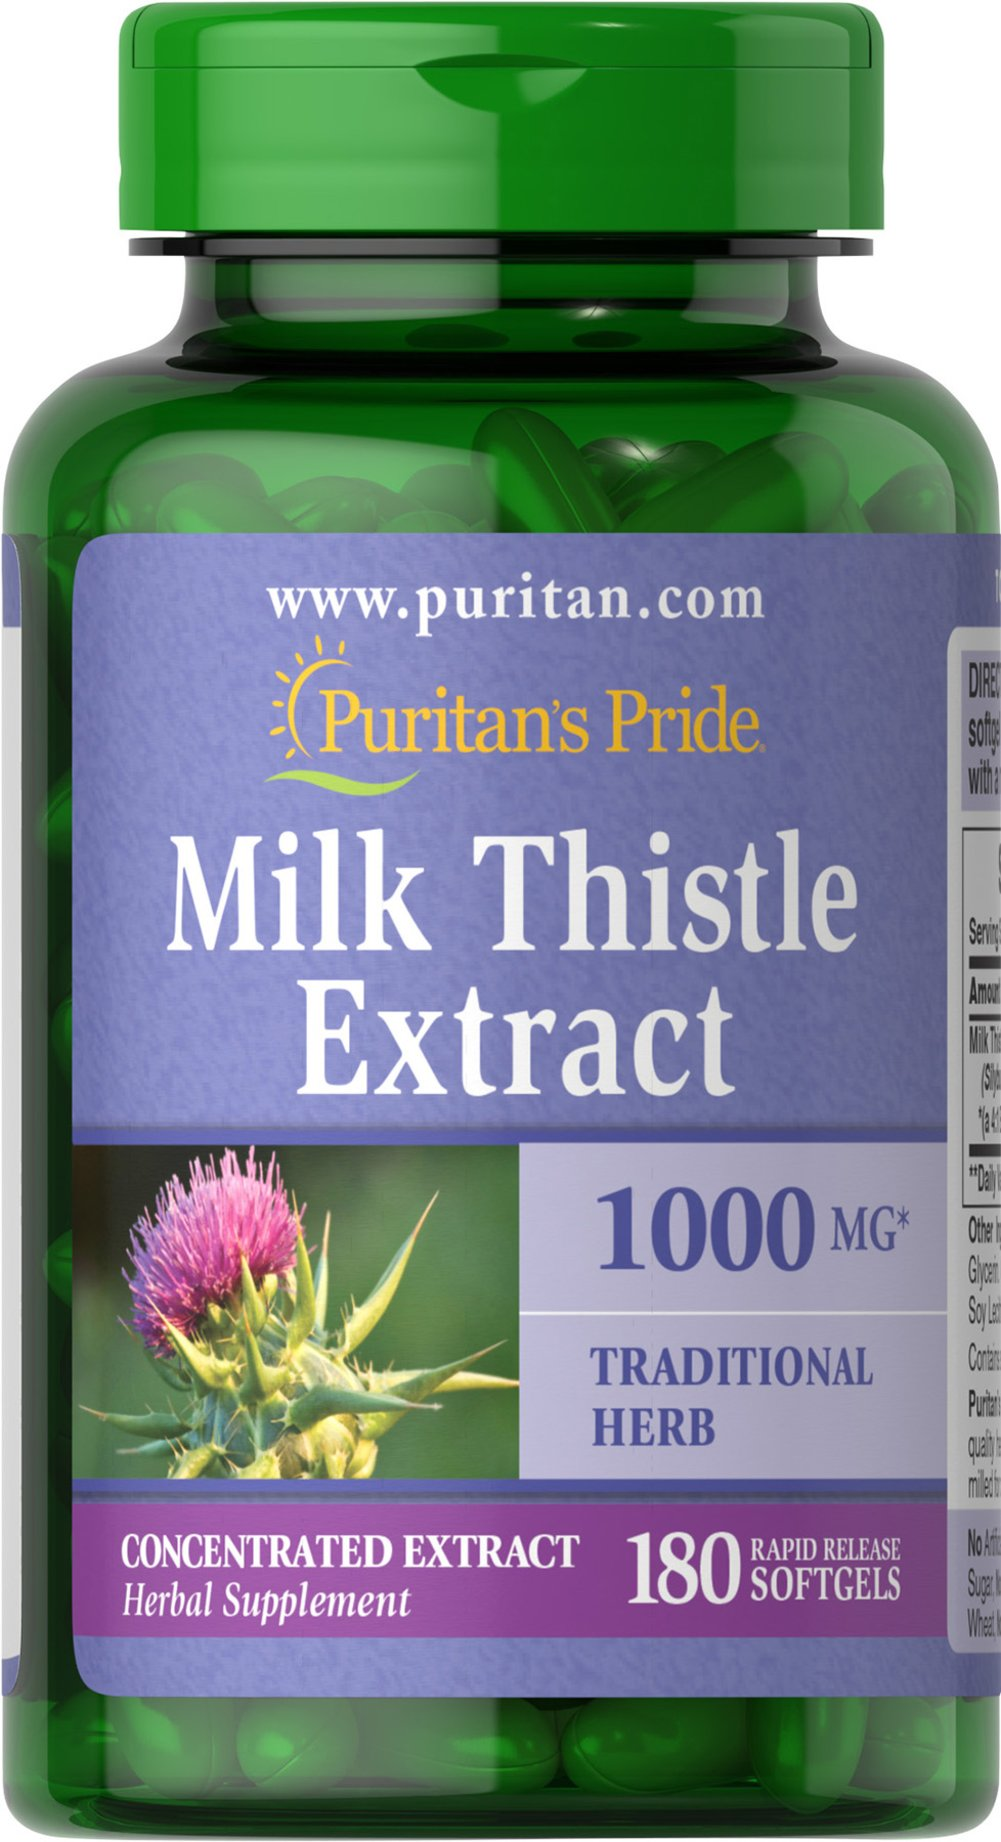 Milk Thistle 4:1 Extract 1000 mg (Silymarin) <p>The exceptional benefits of Milk Thistle are due to its powerful antioxidant properties, which help to optimize health and well being.**</p><p>Adults can take one softgel once or twice daily.</p><p>Puritan's Pride's Guarantee: We use only the finest quality herbs and spices. Each is screened and finely milled for quick release. </p> 180 Softgels 1000 mg $17.99